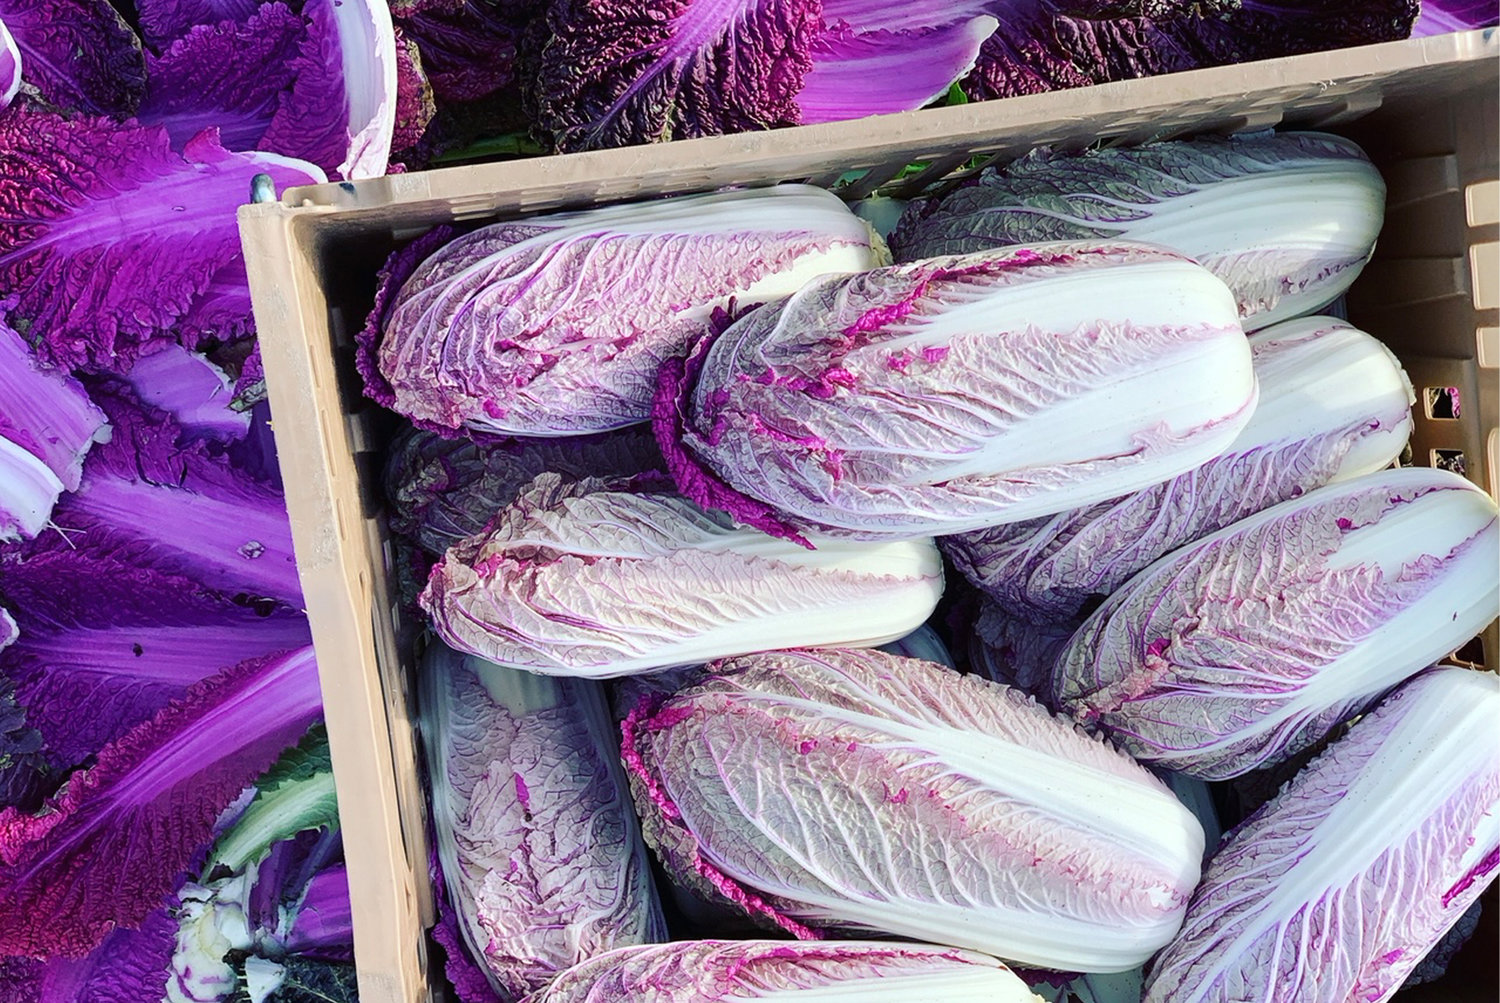 Red Napa Cabbage grown on Wishing Stone Farm